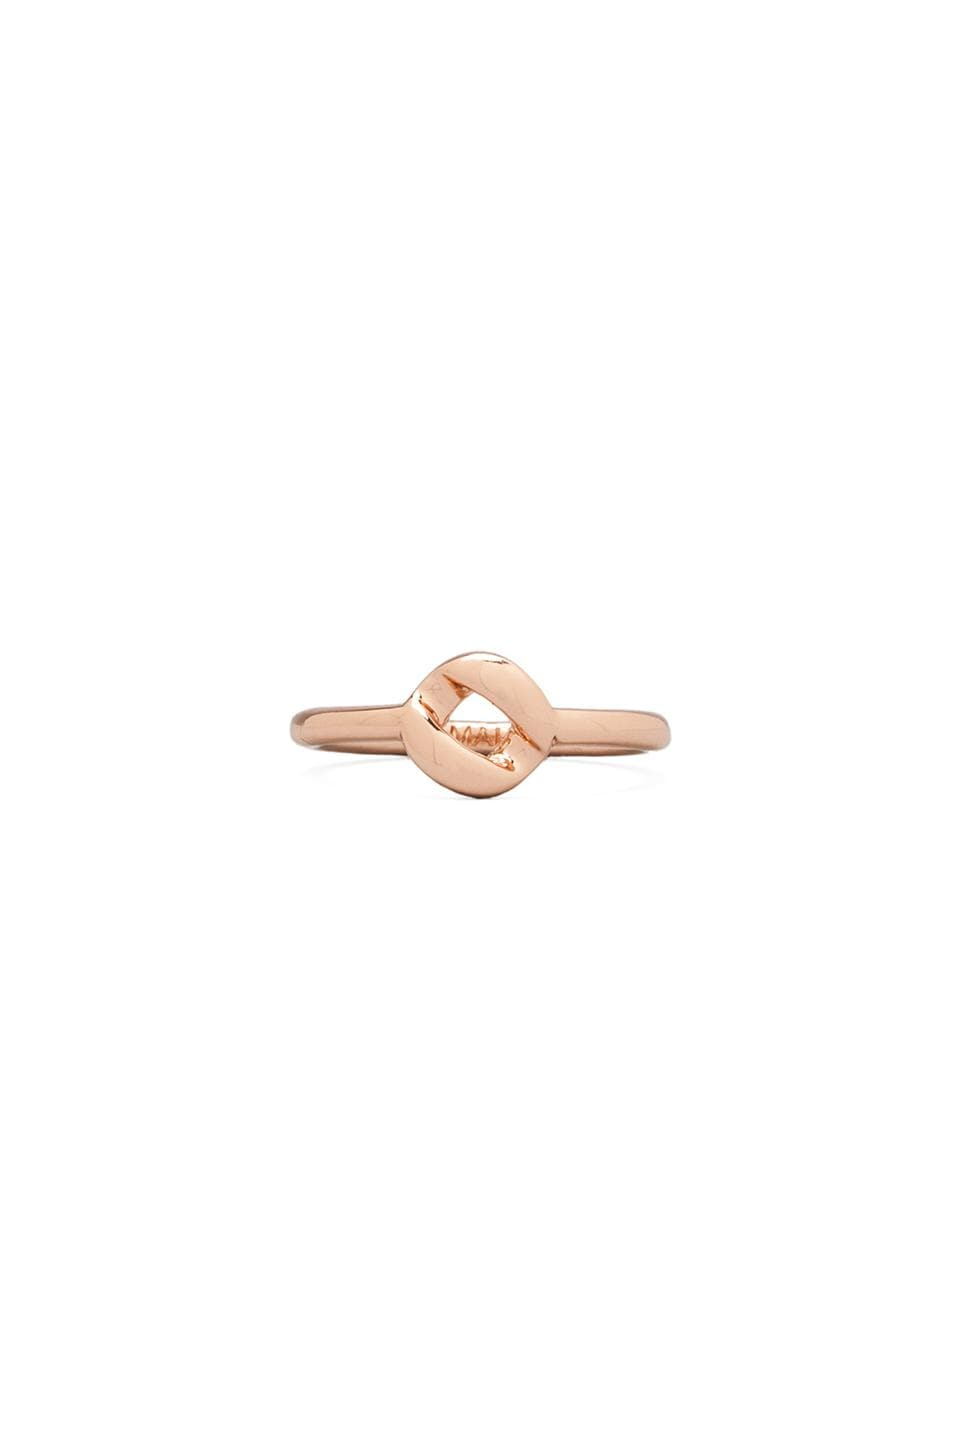 Marc by Marc Jacobs Link to Katie Tiny Ring in Rose Gold